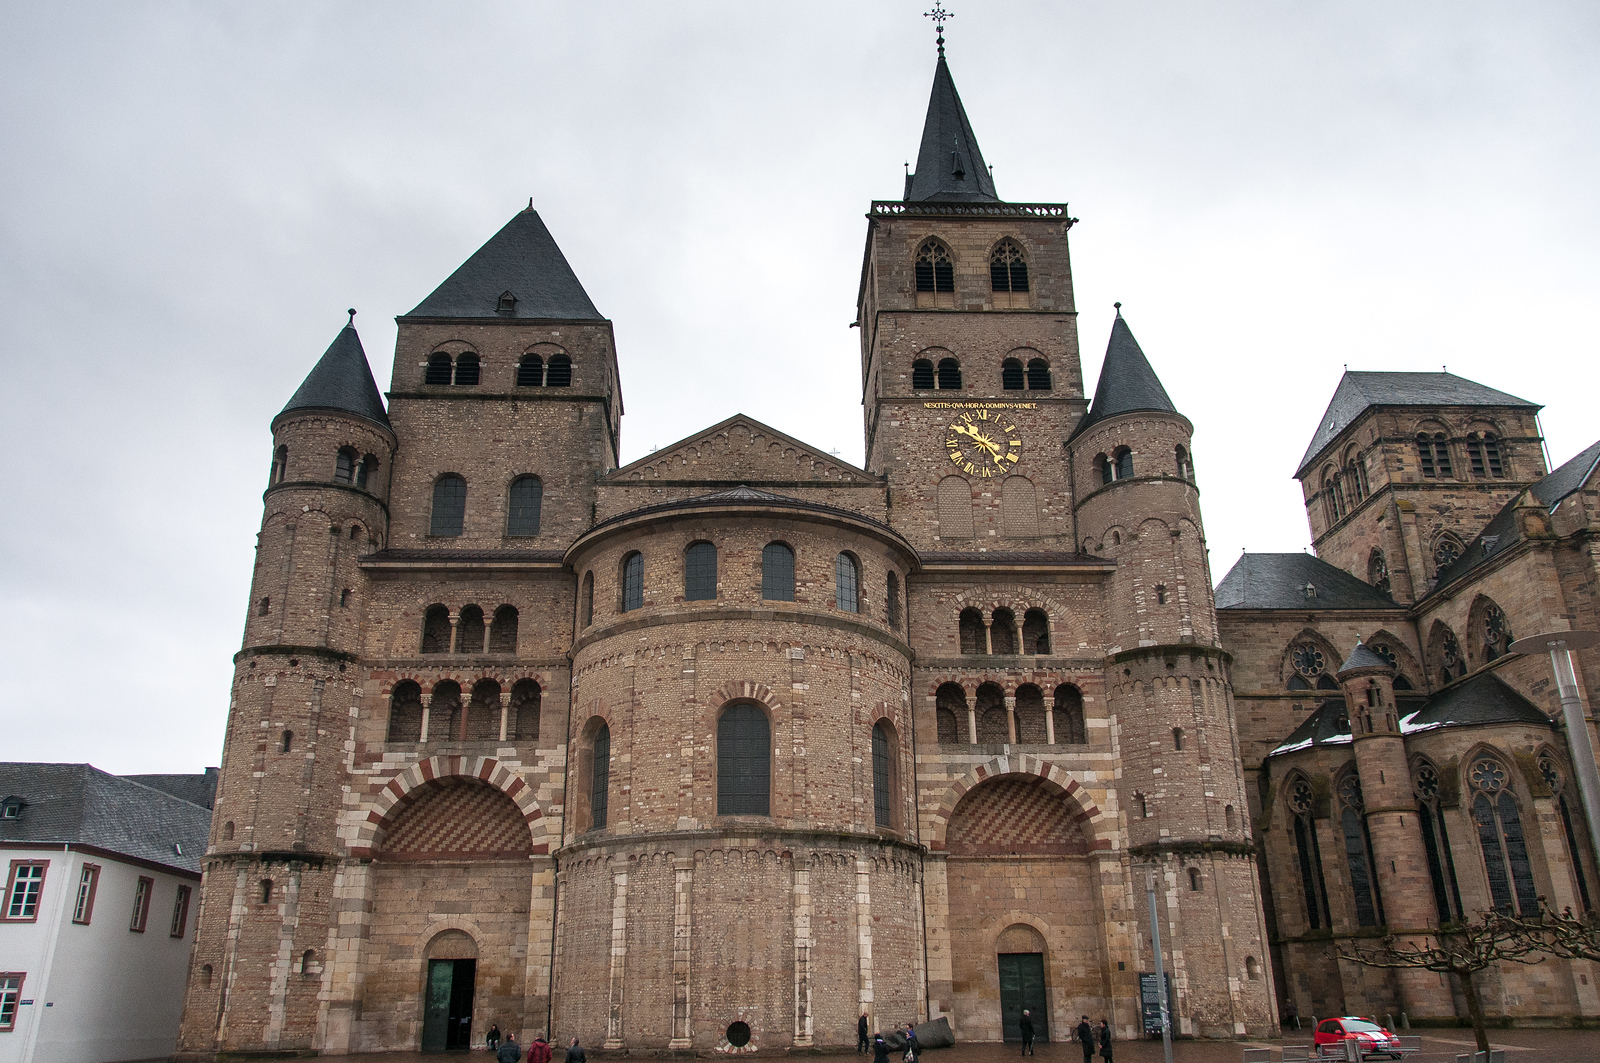 Roman Monuments, Cathedral of St Peter and Church of Our Lady in Trier UNESCO World Heritage Site